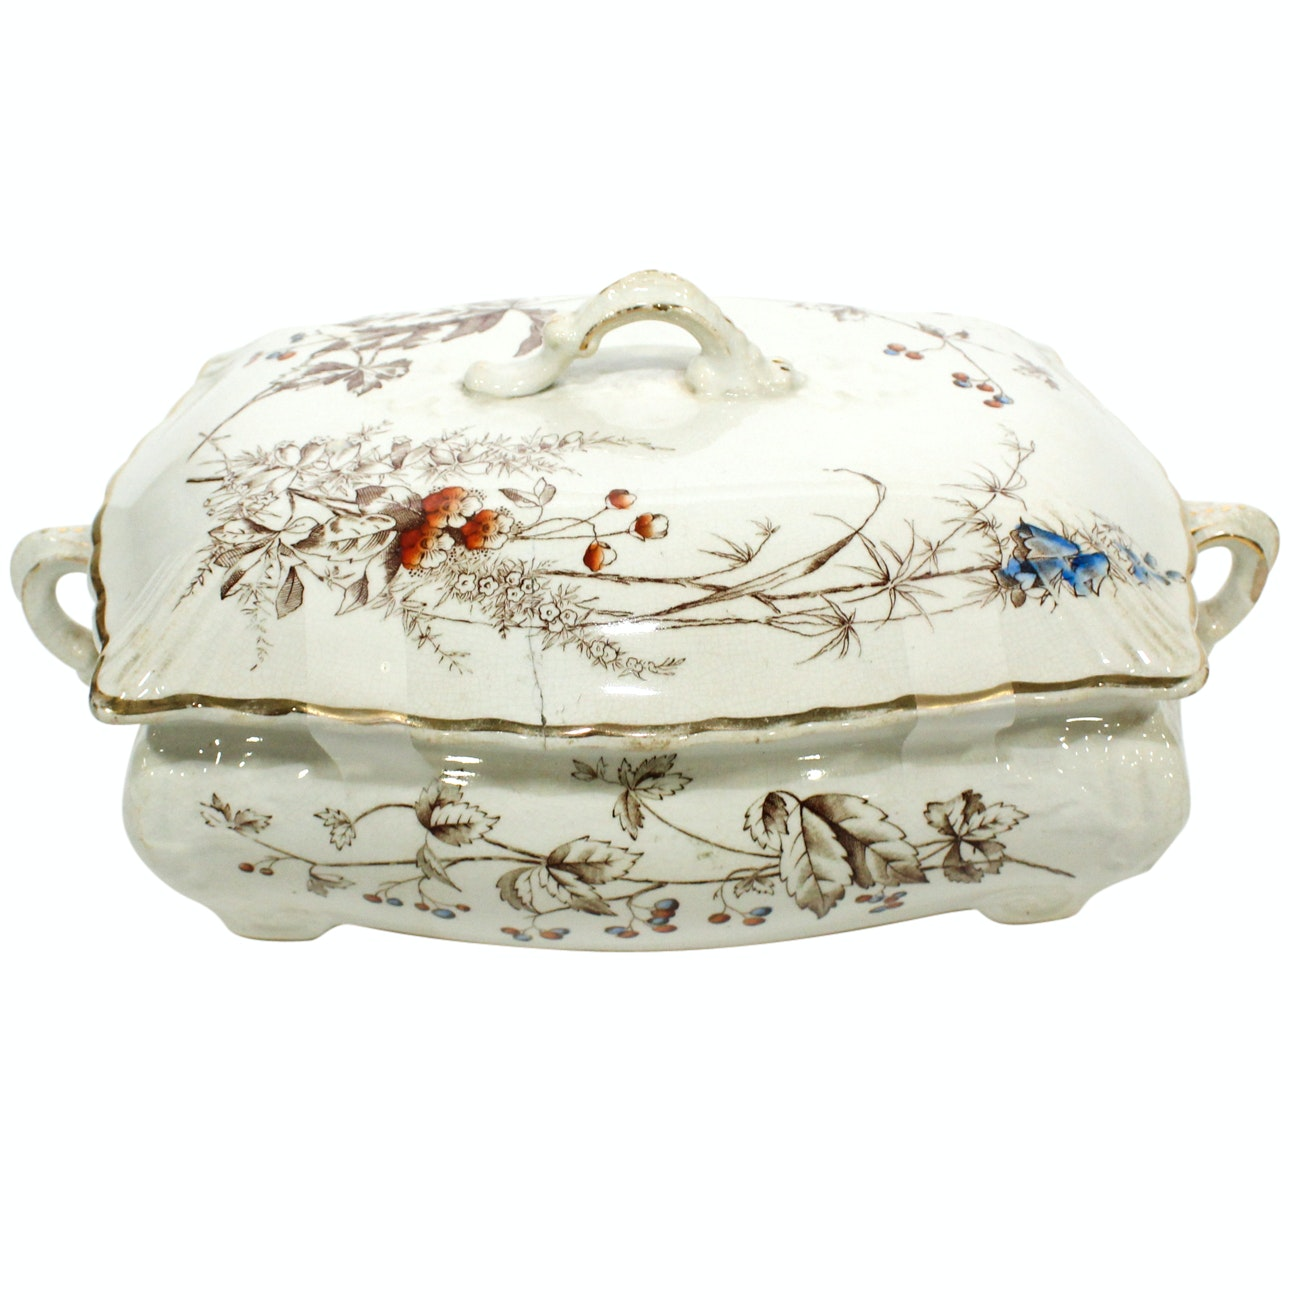 """Fenton Porcelain """"Minerva"""" Vegetable Tureen and Cover, Early 20th Century"""